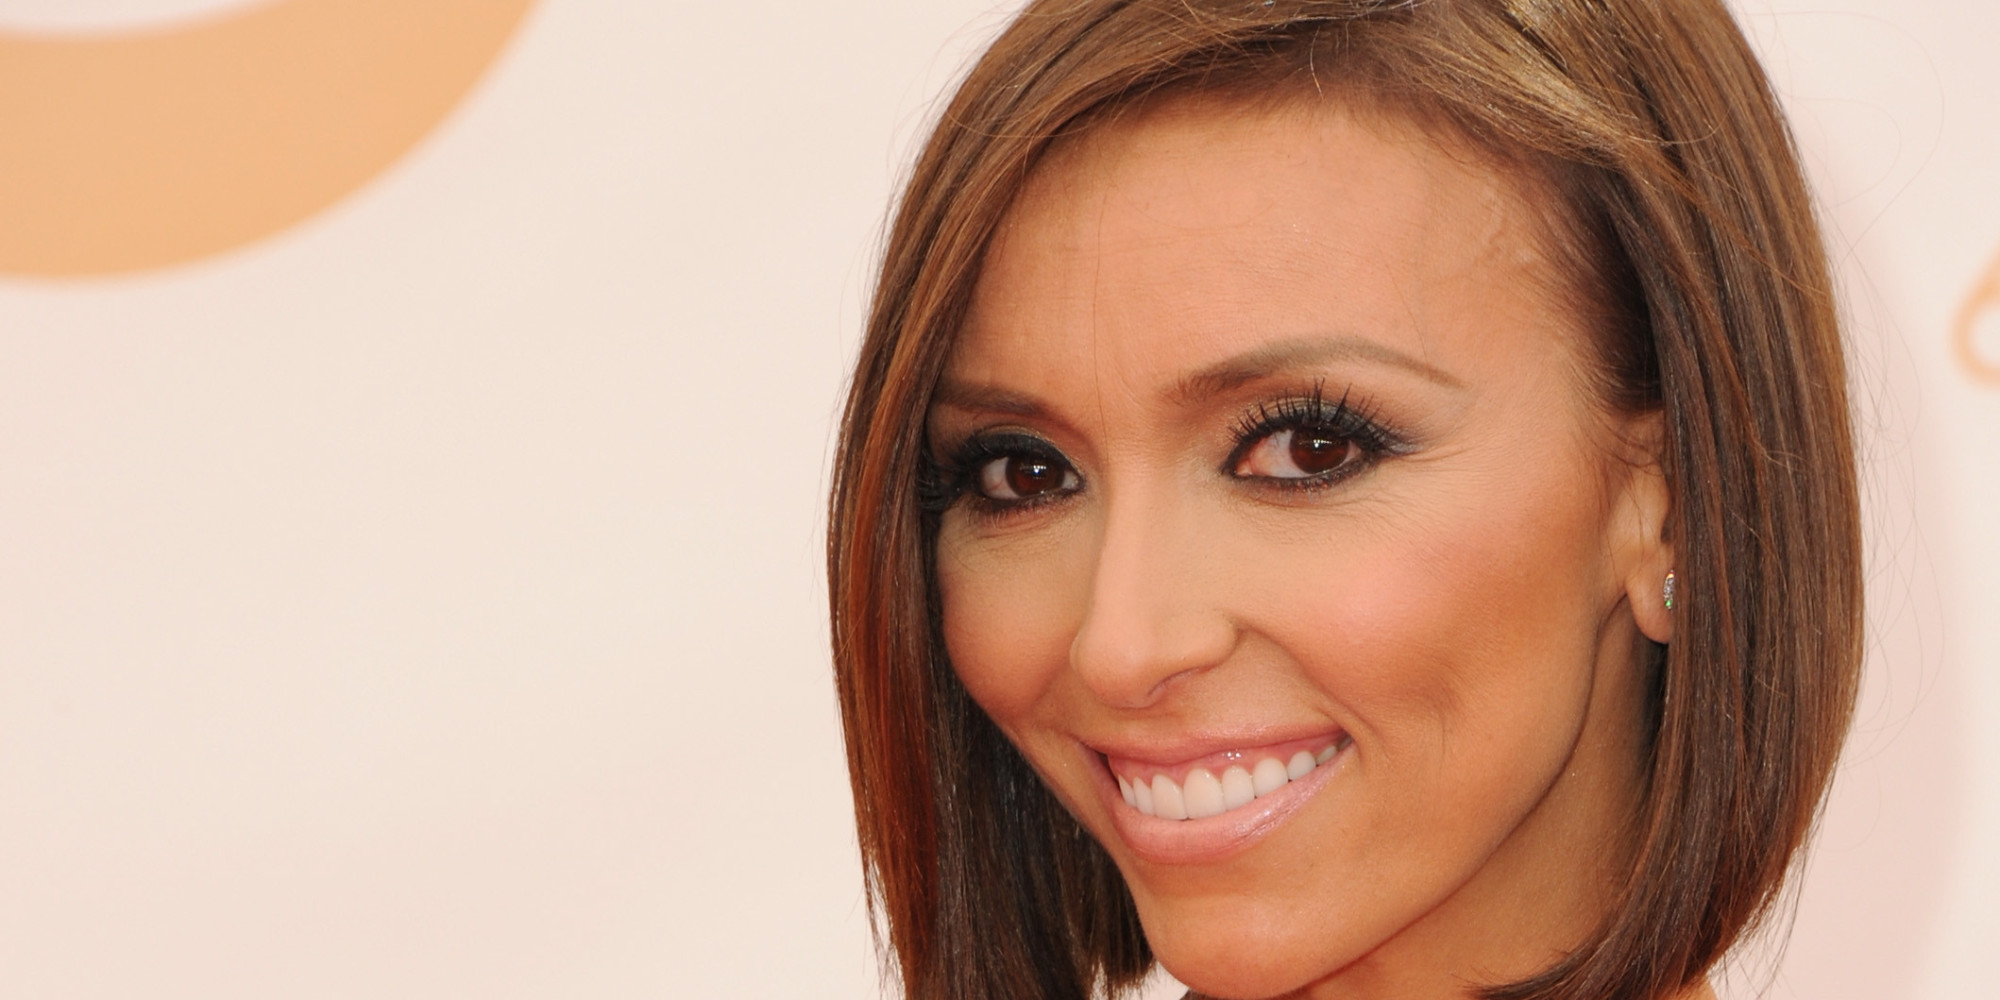 giuliana rancics ring at the emmy awards is worth 1 million photos huffpost - Giuliana Rancic Wedding Ring